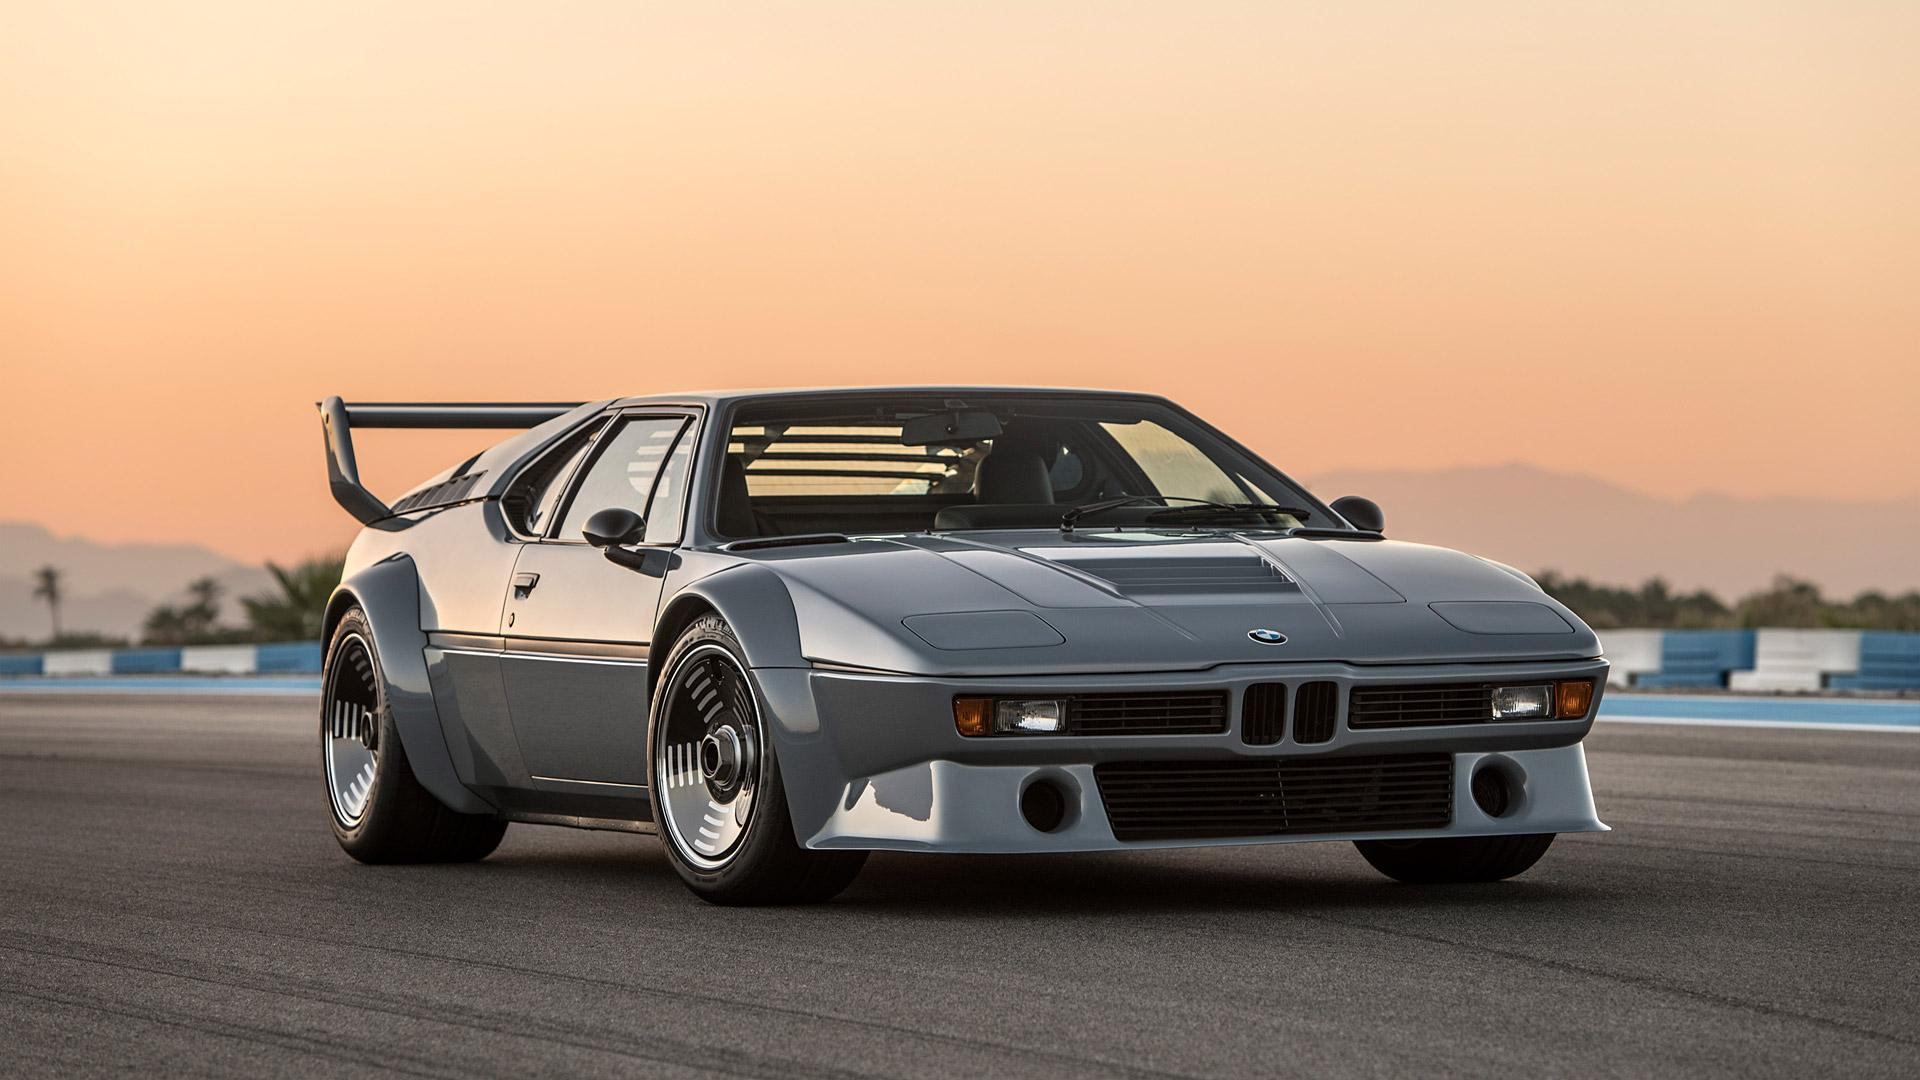 BMW M1 Wallpapers - Wallpaper Cave